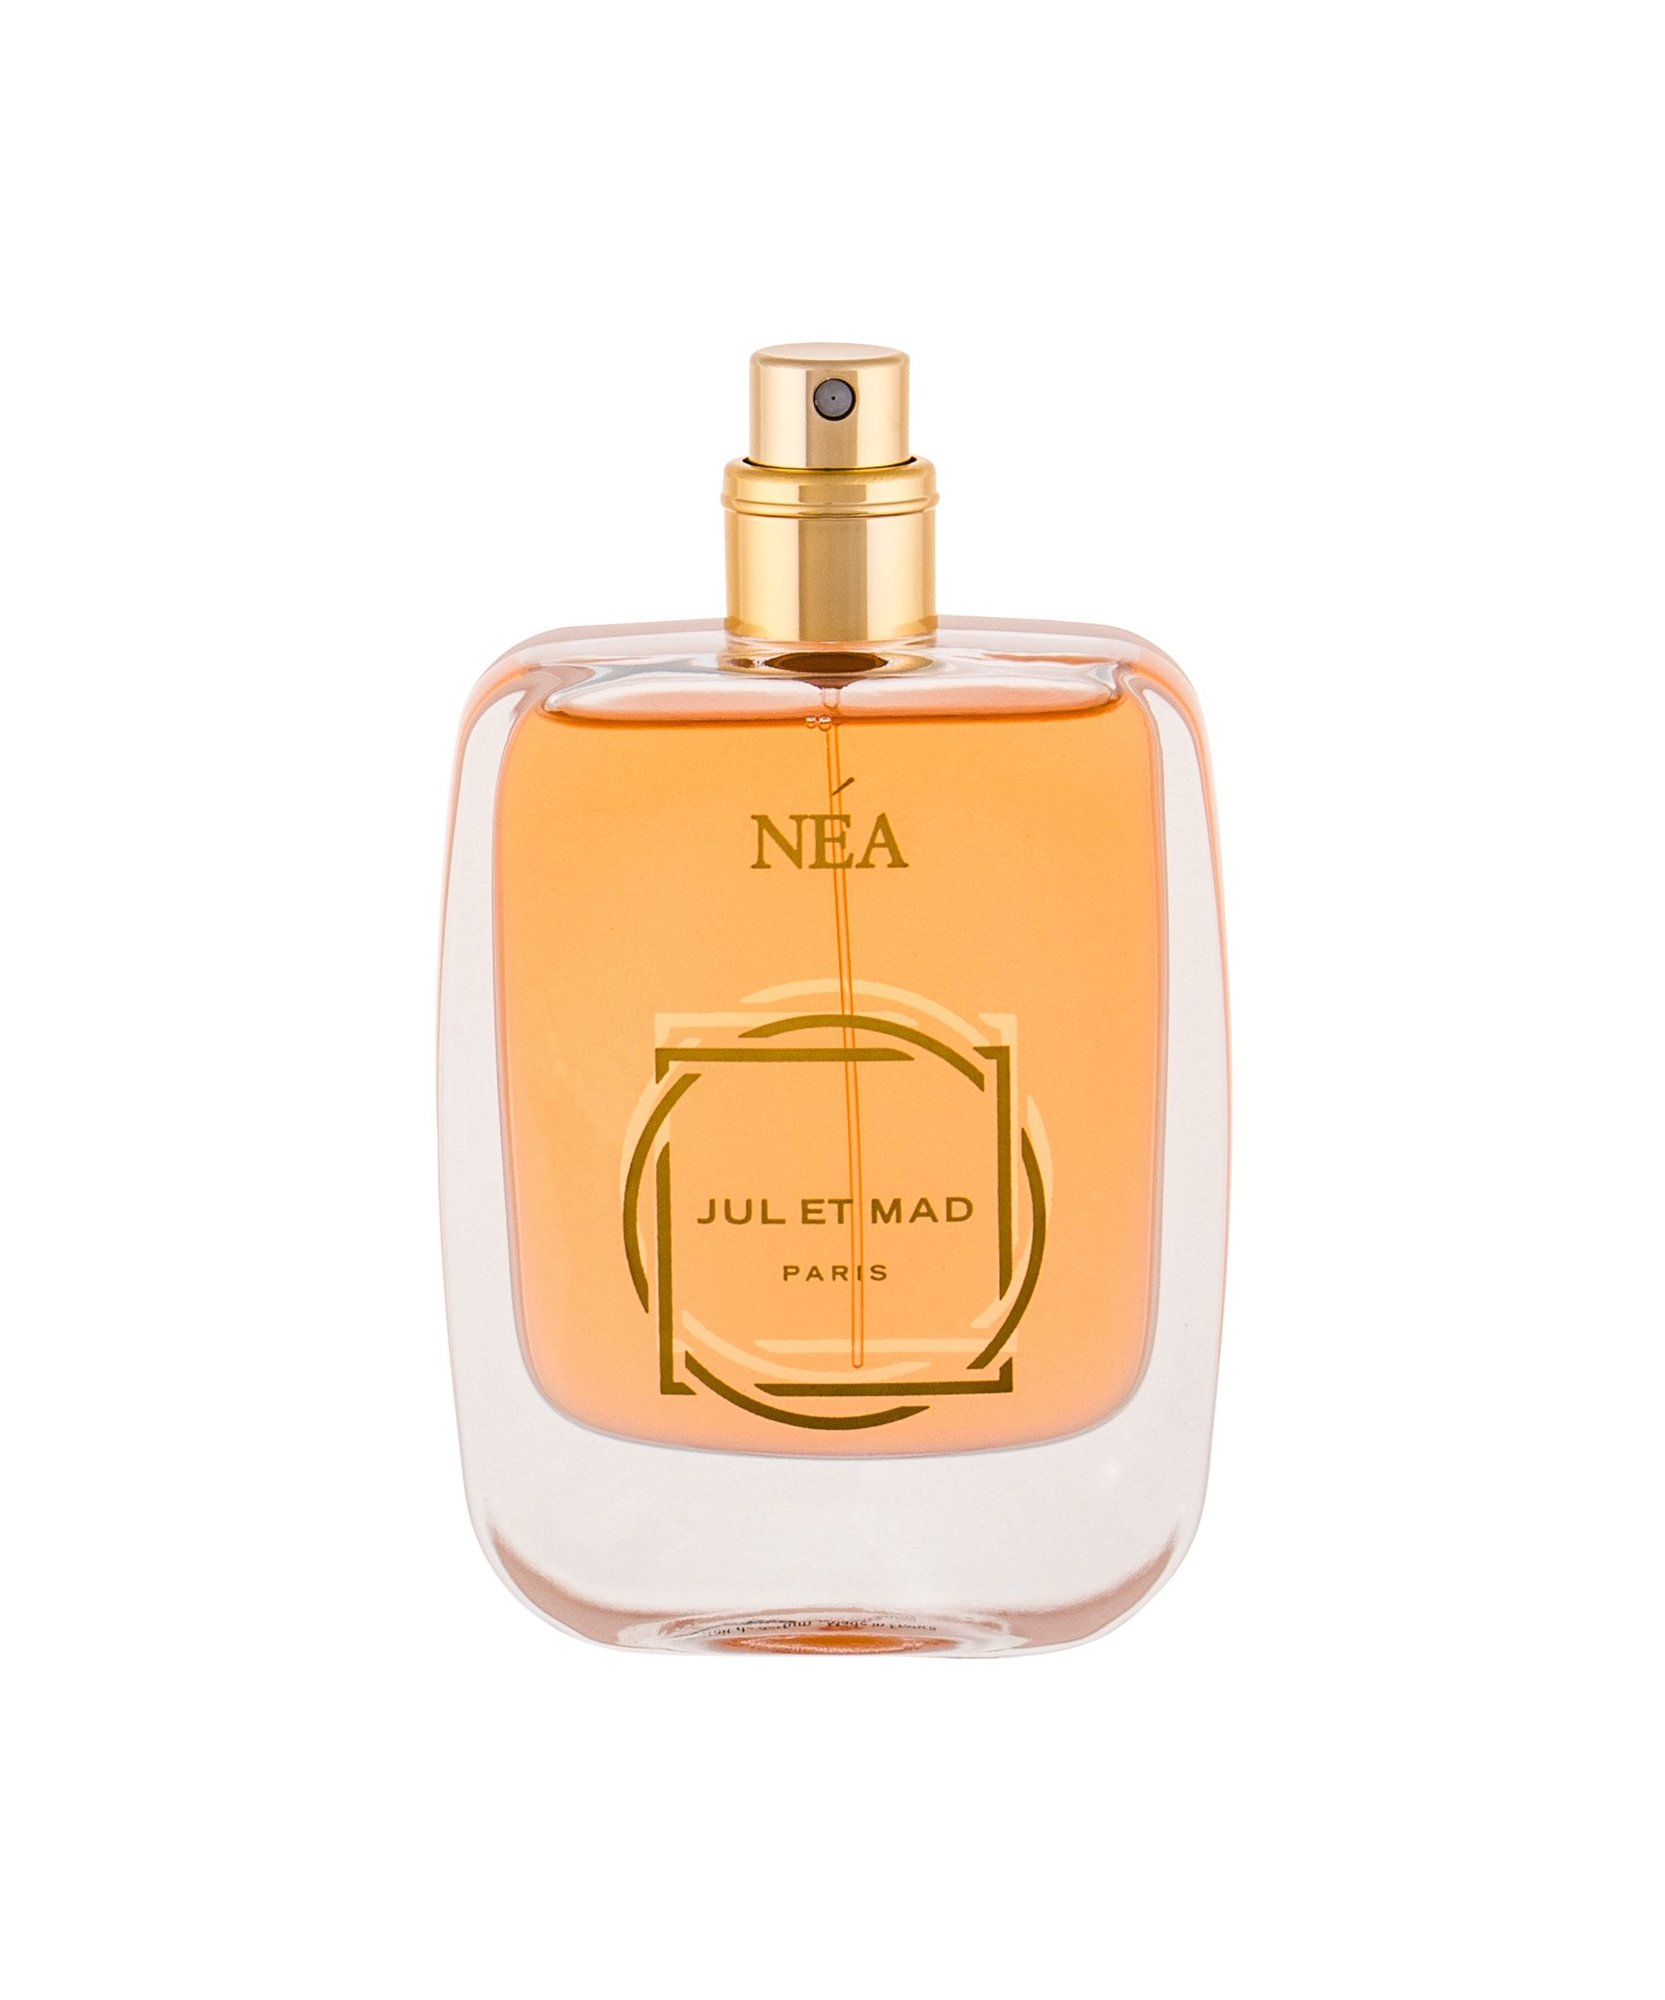 Jul et Mad Paris Néa Perfume 50ml